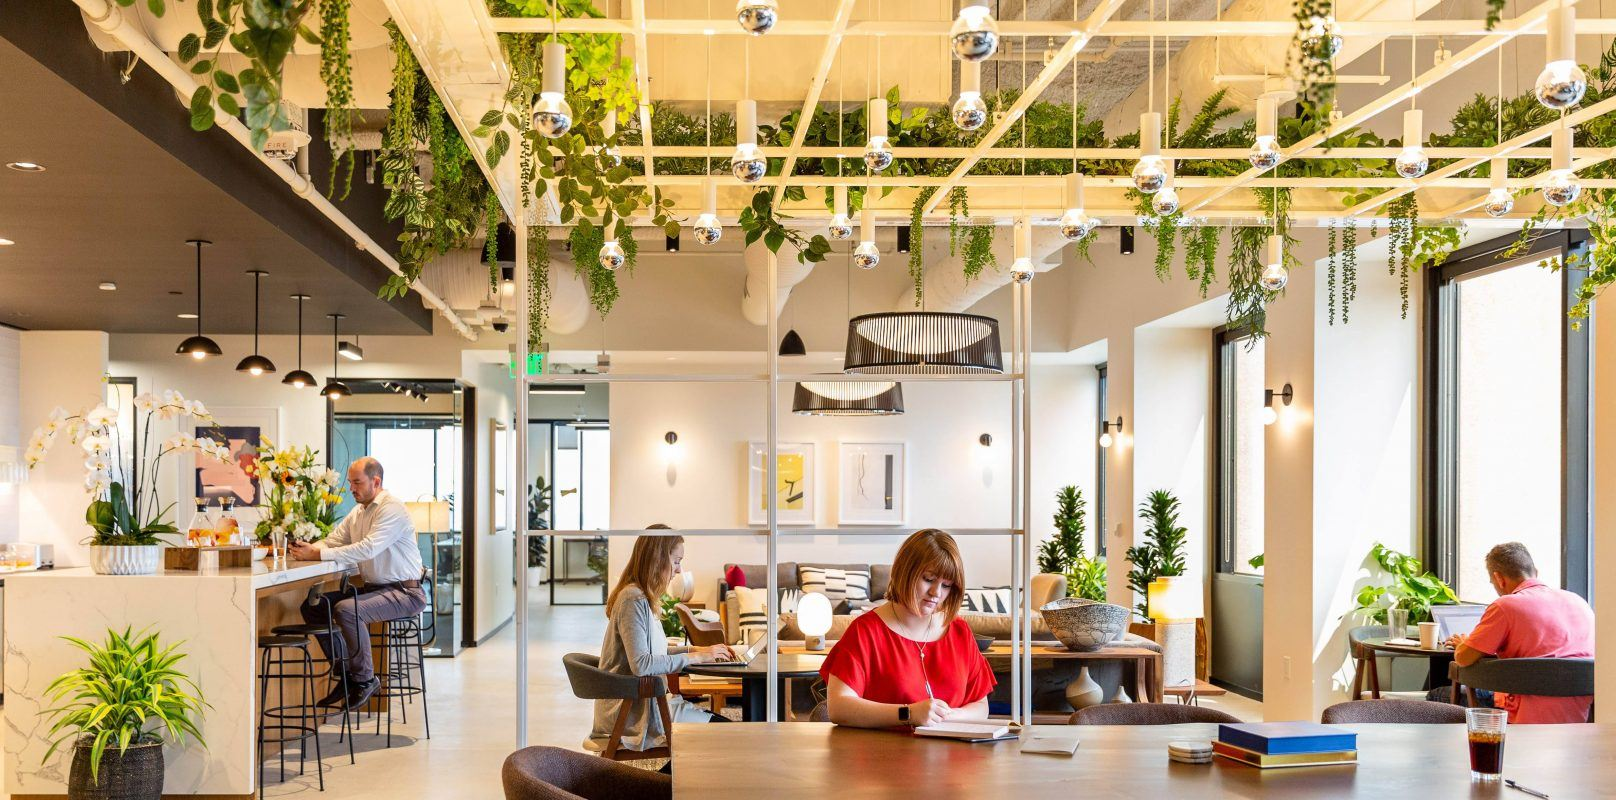 Coworking Space | Shared Office Space | Industrious Office